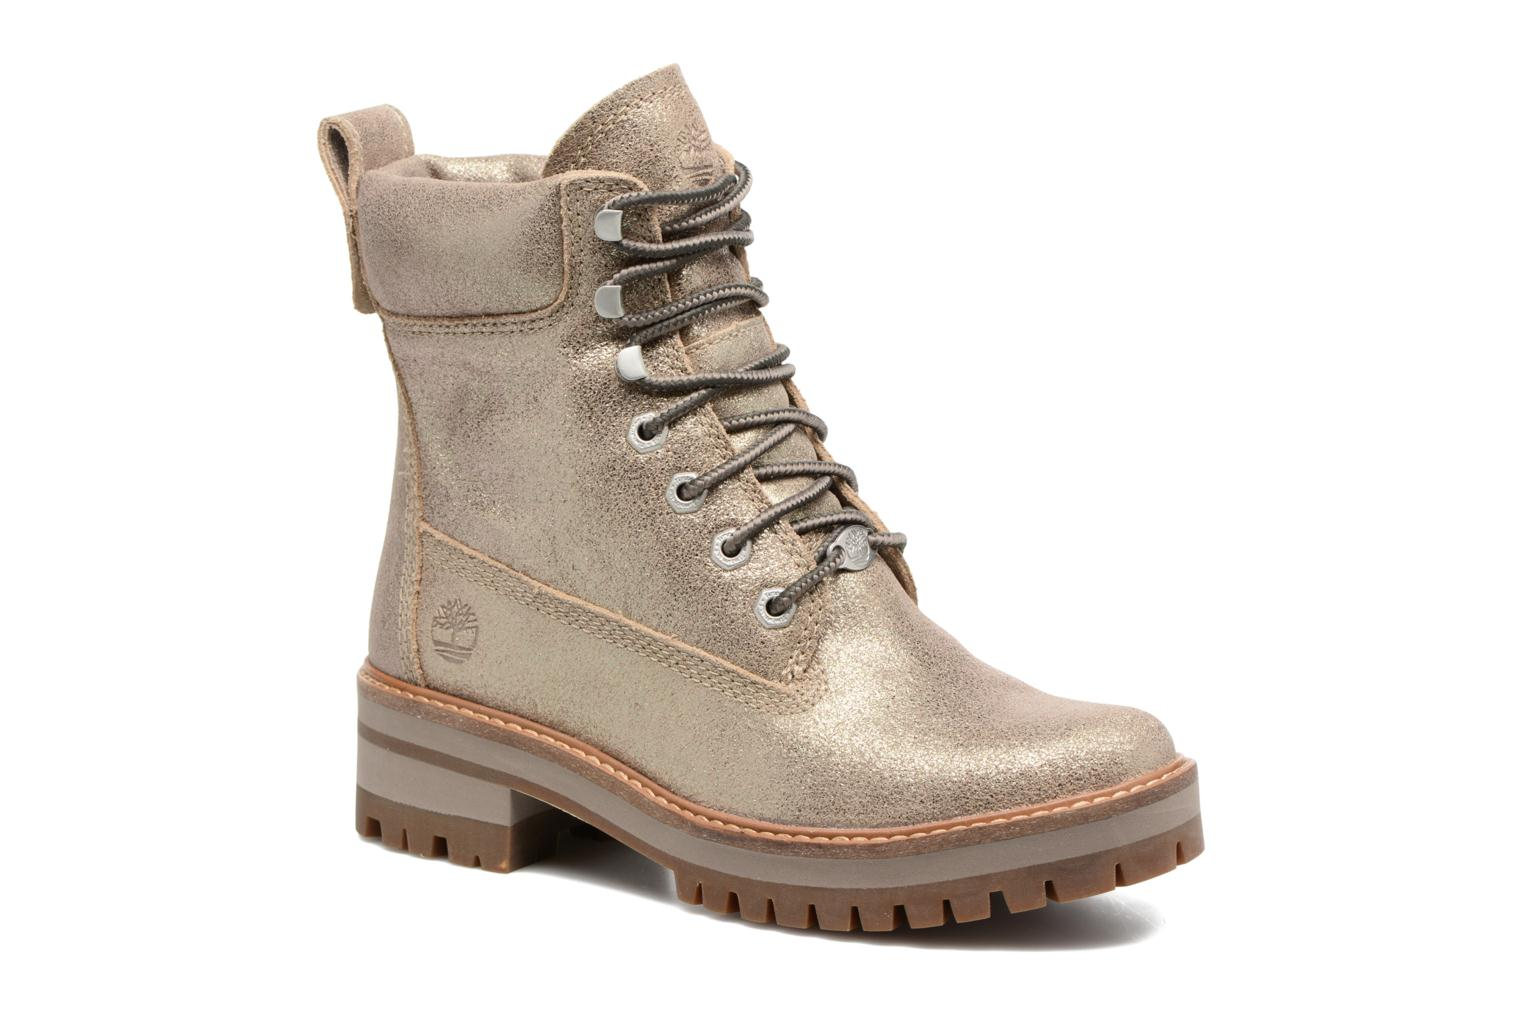 Courmayeur Valley Gold Boot - Gold shiny suede Timberland irXc9ucw4s